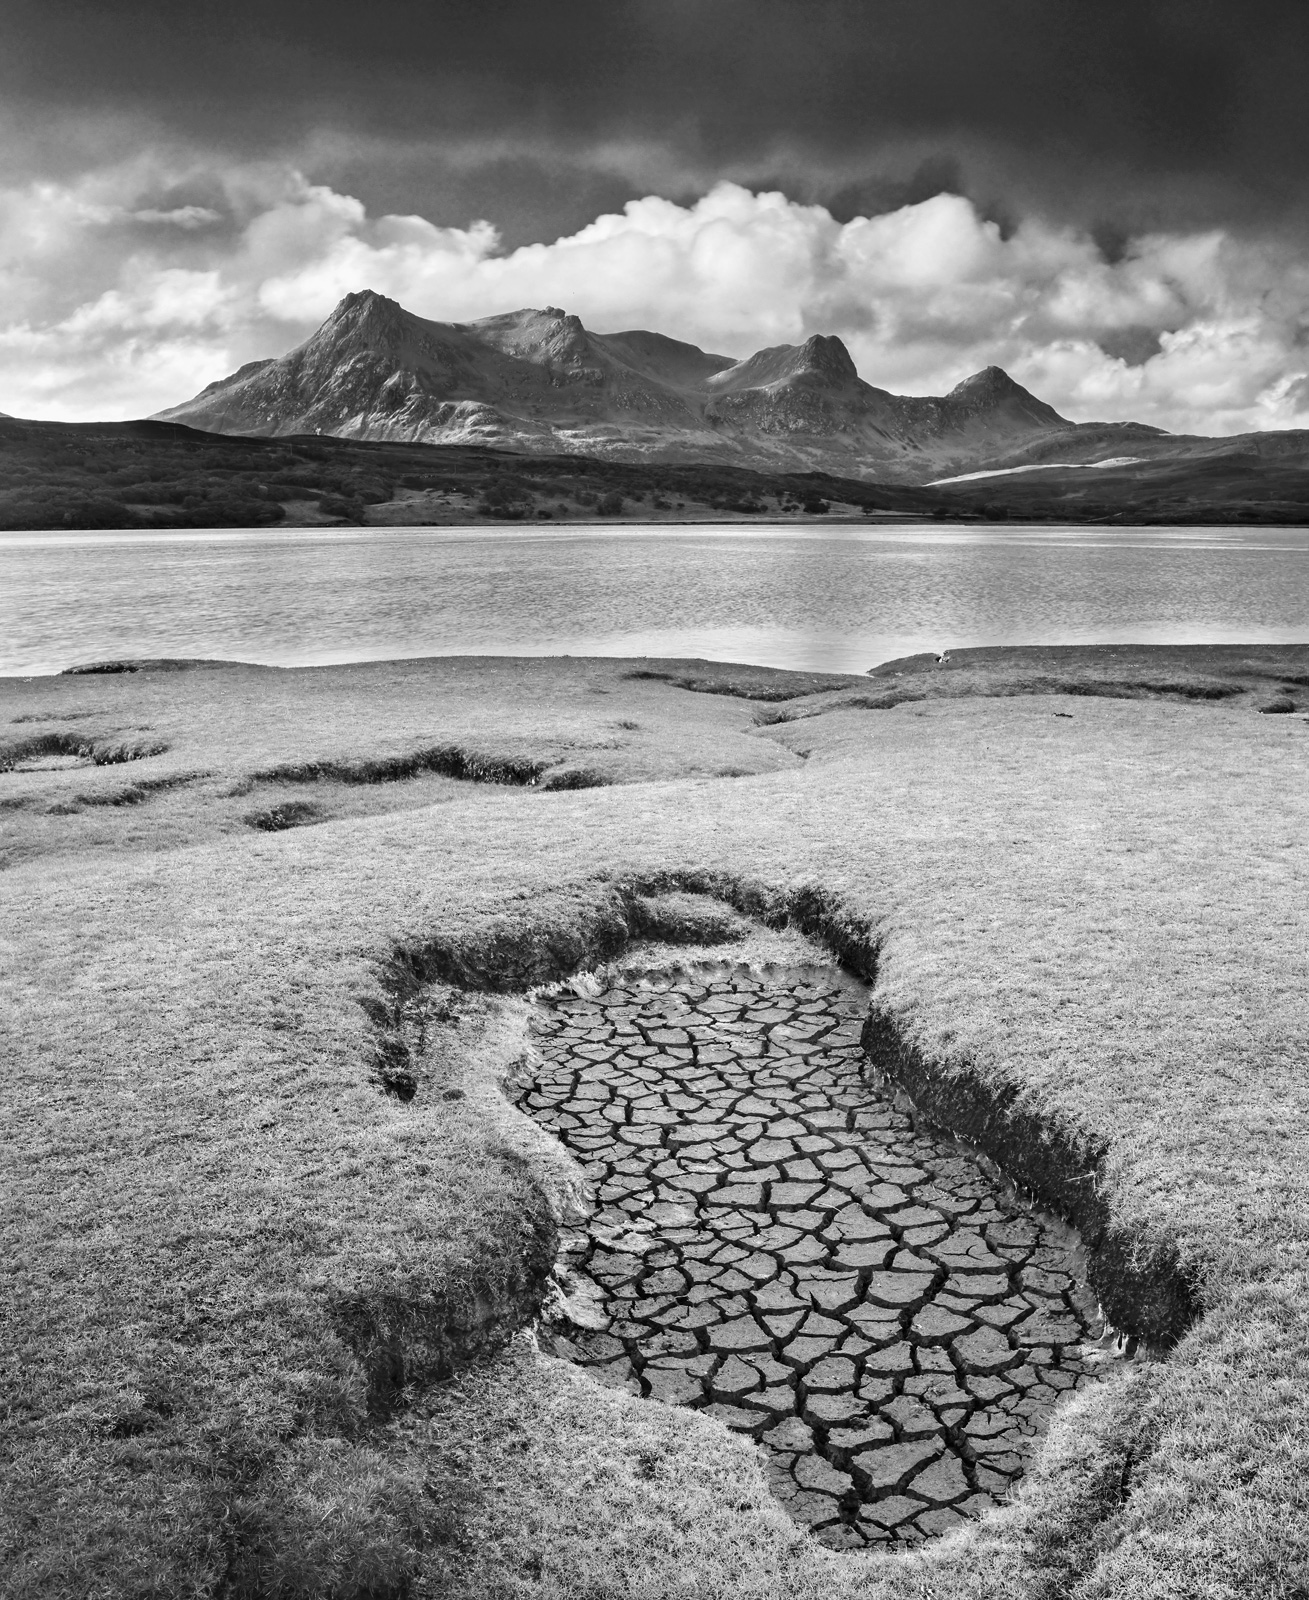 A pool of water has dried on the salt marshes at the edge of the tidal estuary at the Kyle of Tongue. The flakes of cracked...